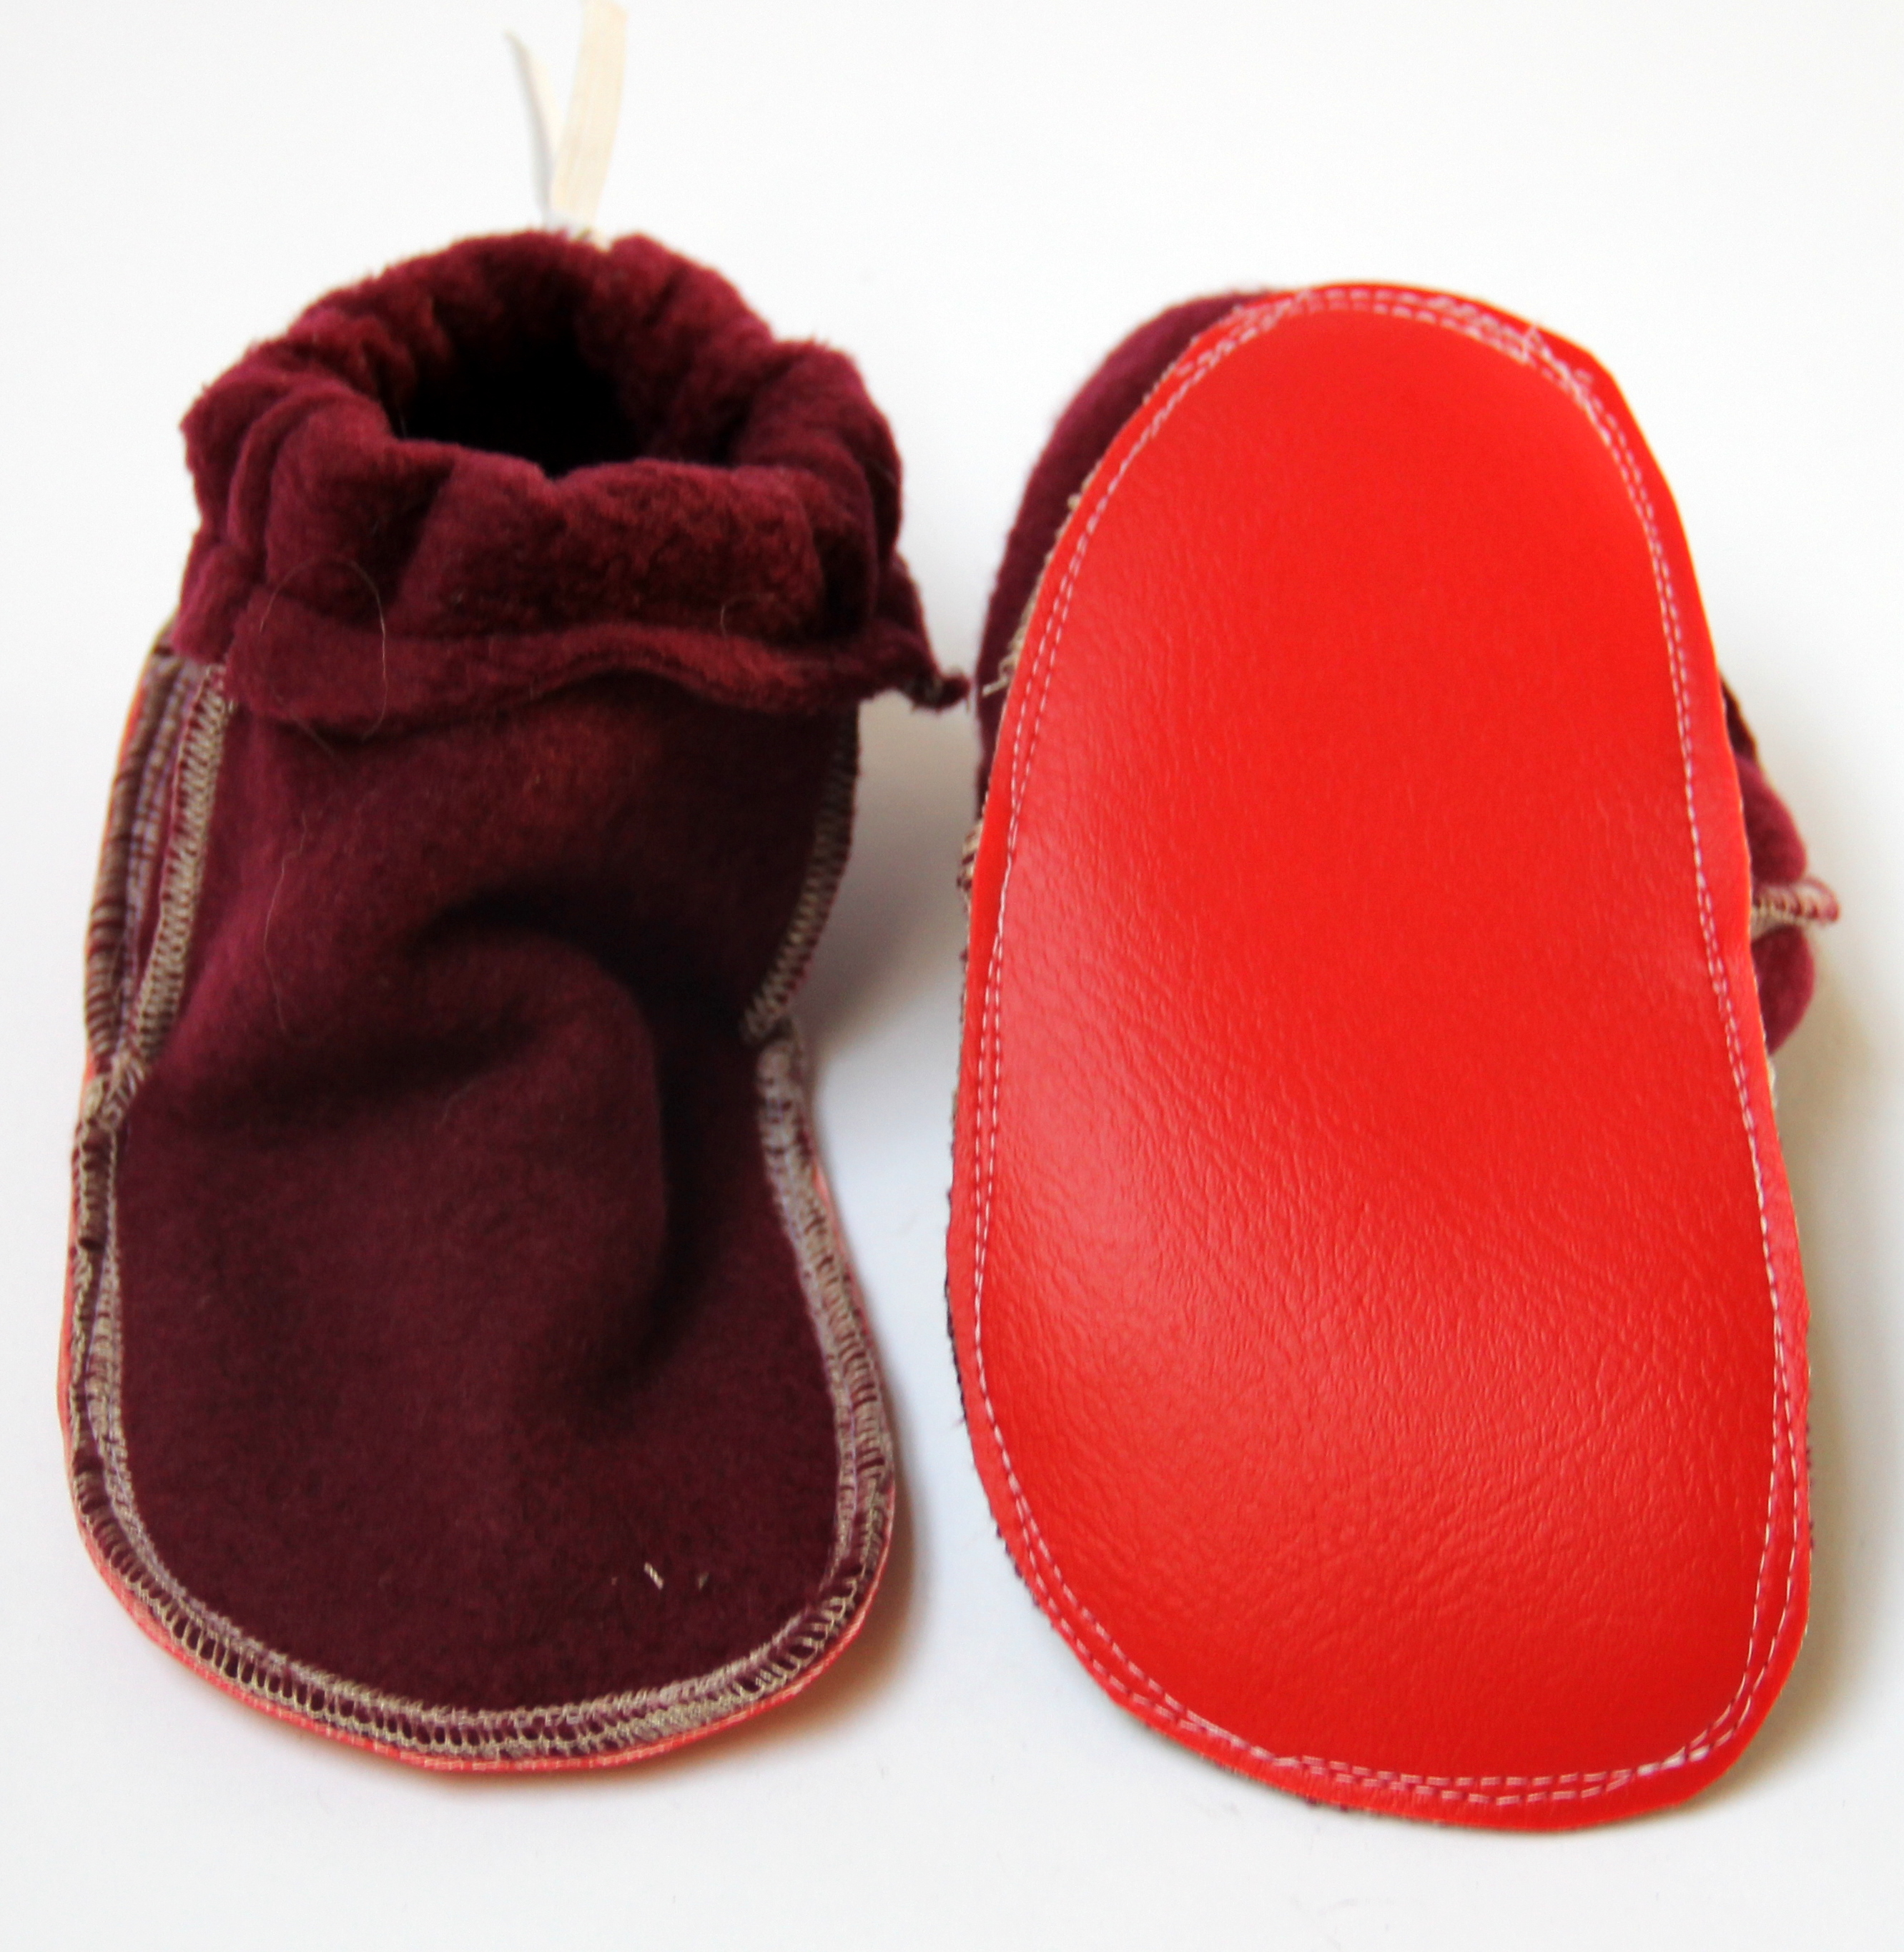 Soft Soled Shoes for Babies and